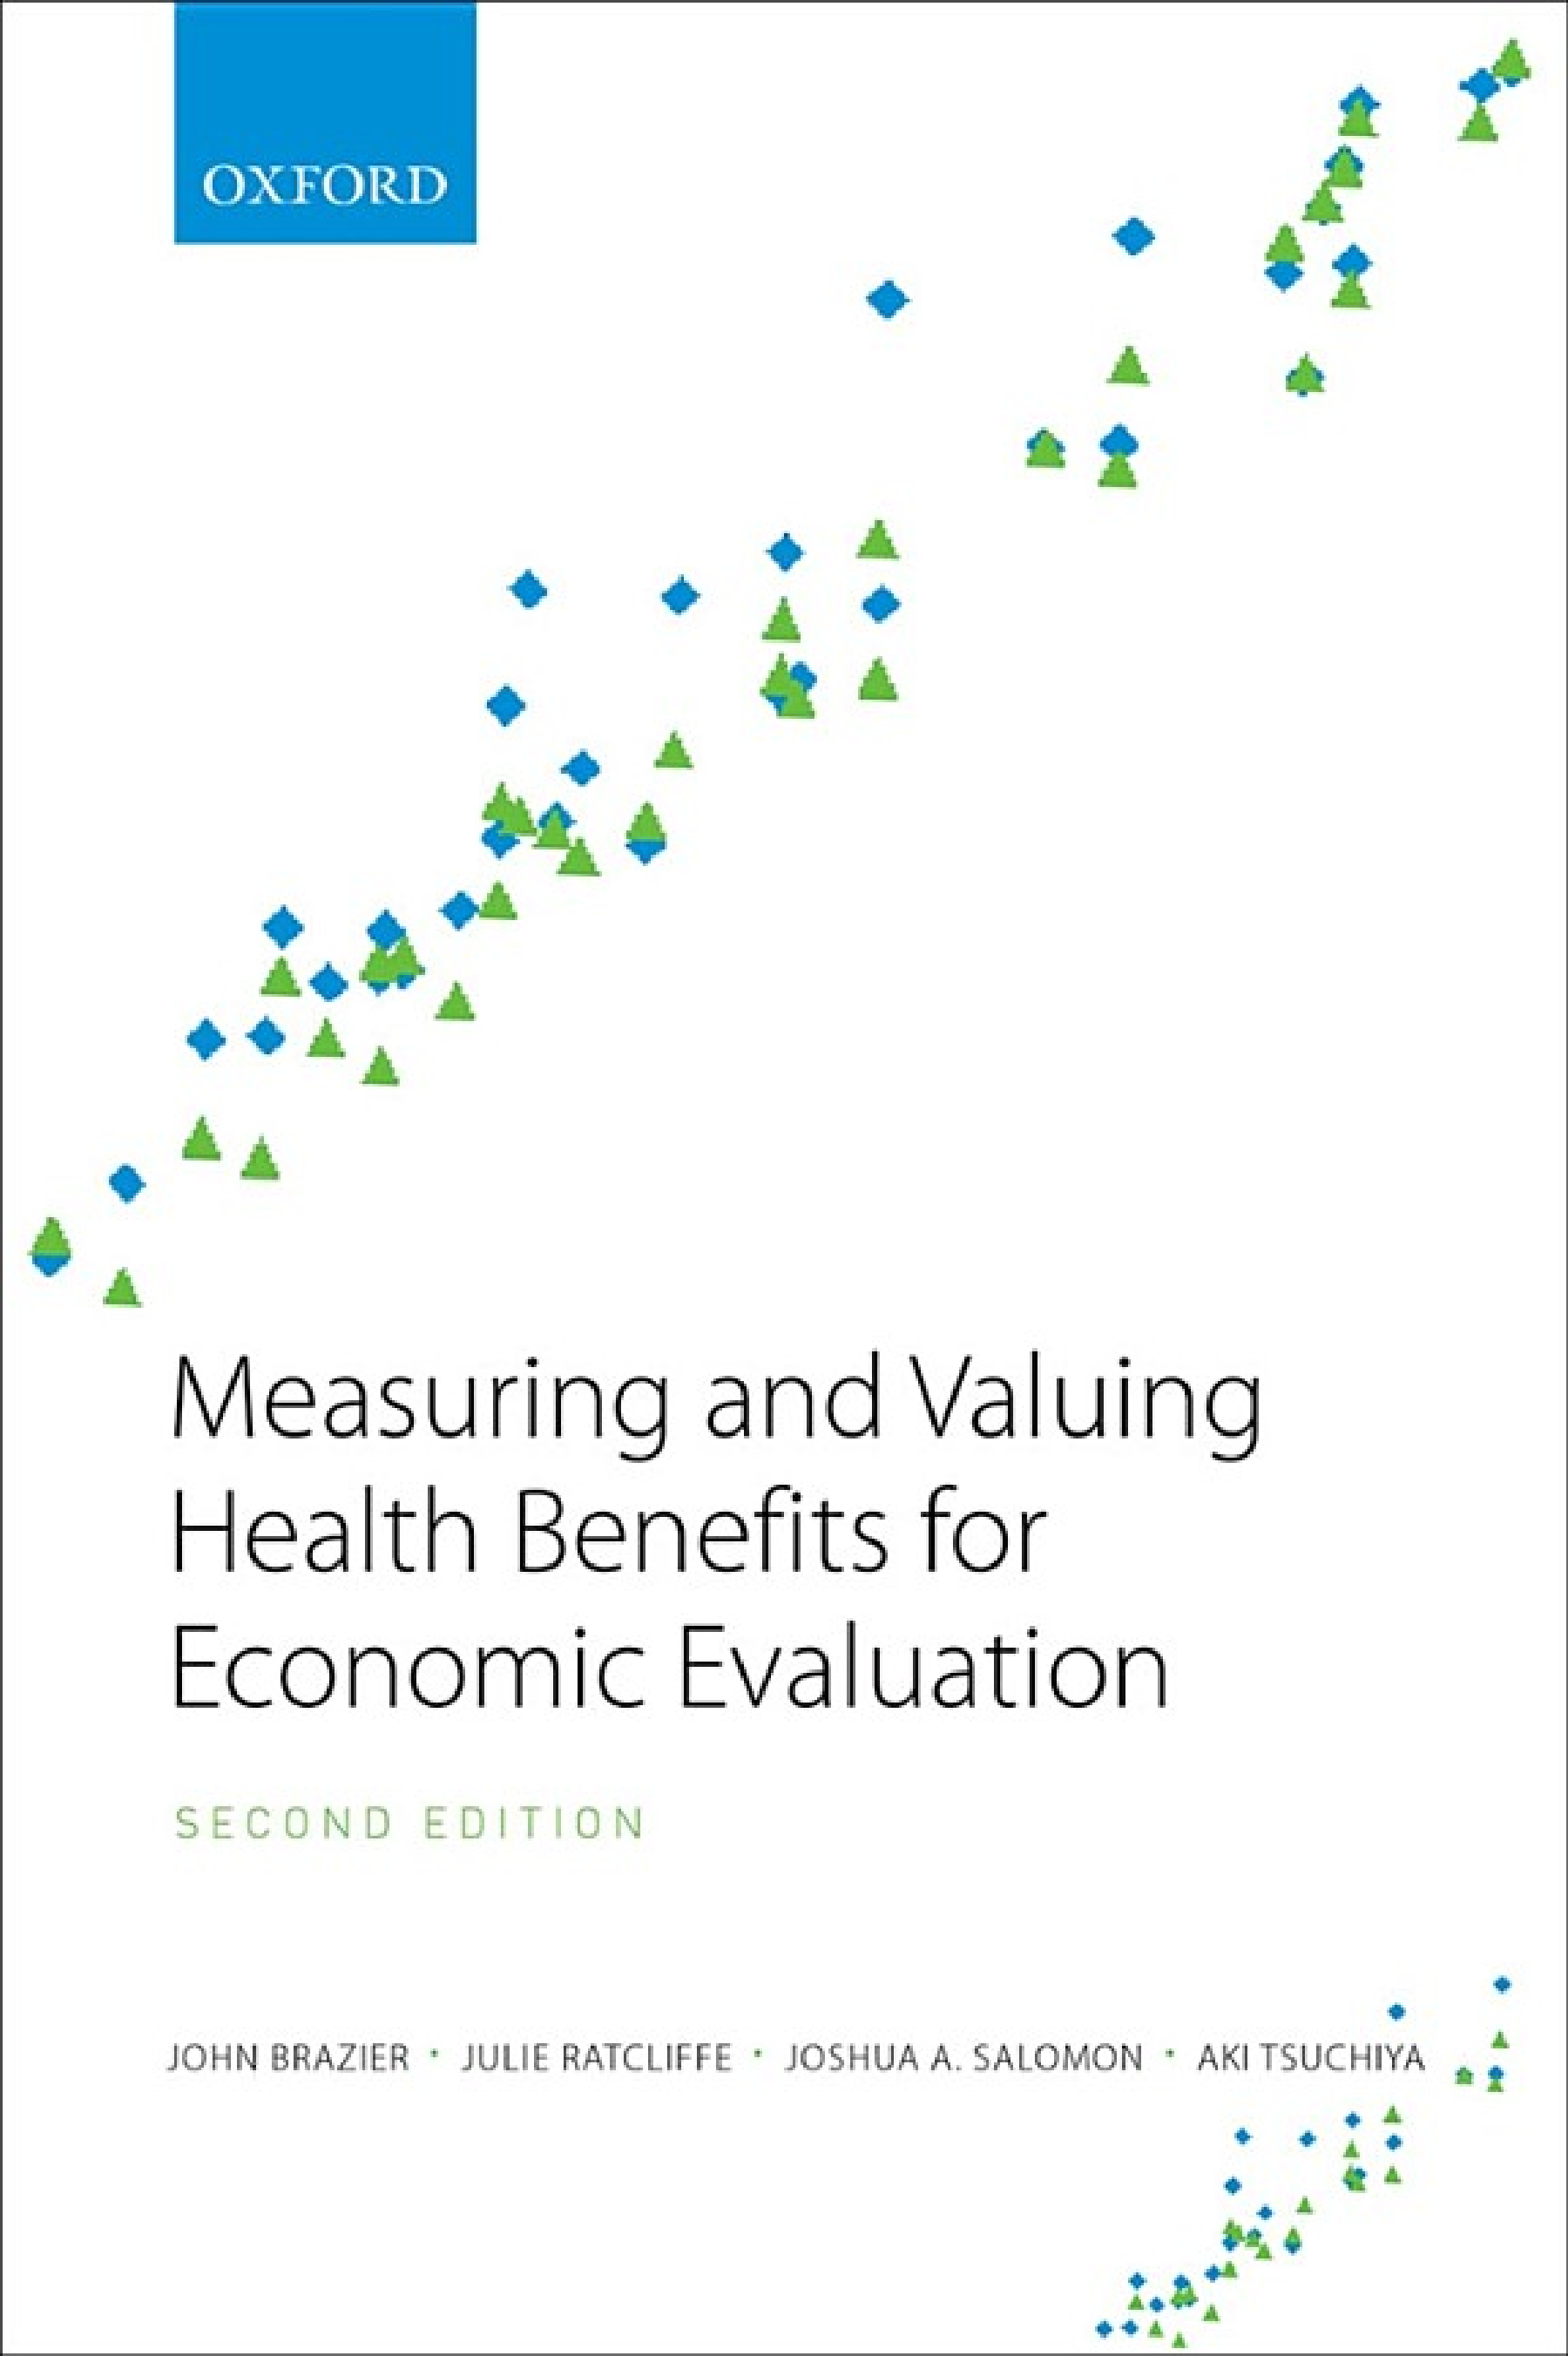 Measuring and Valuing Health Benefits for Economic Evaluation